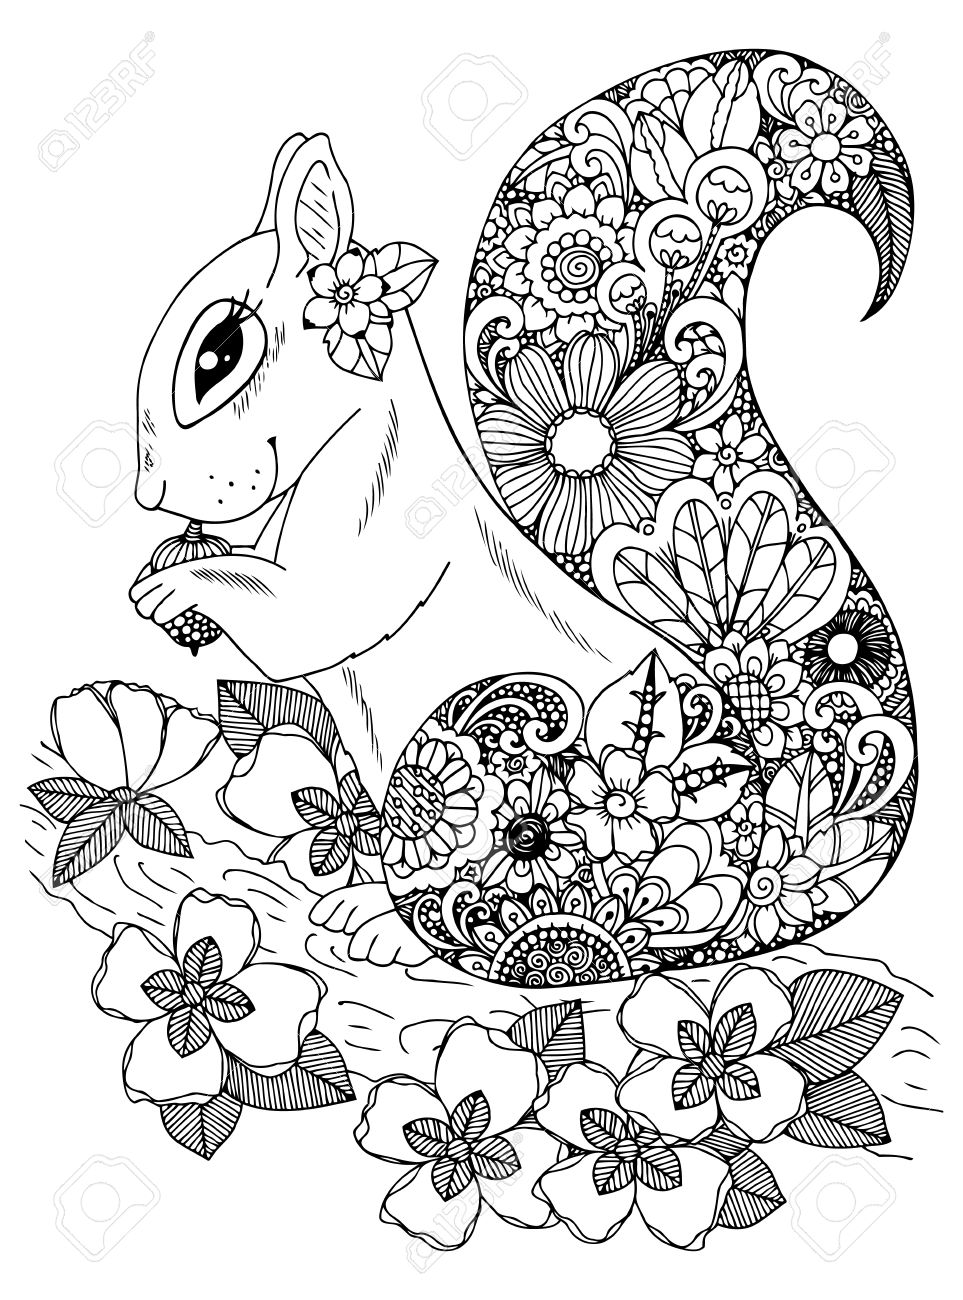 Illustration Zentangle Squirrel With Flowers Doodle Drawing Coloring Page Anti Stress For Adults